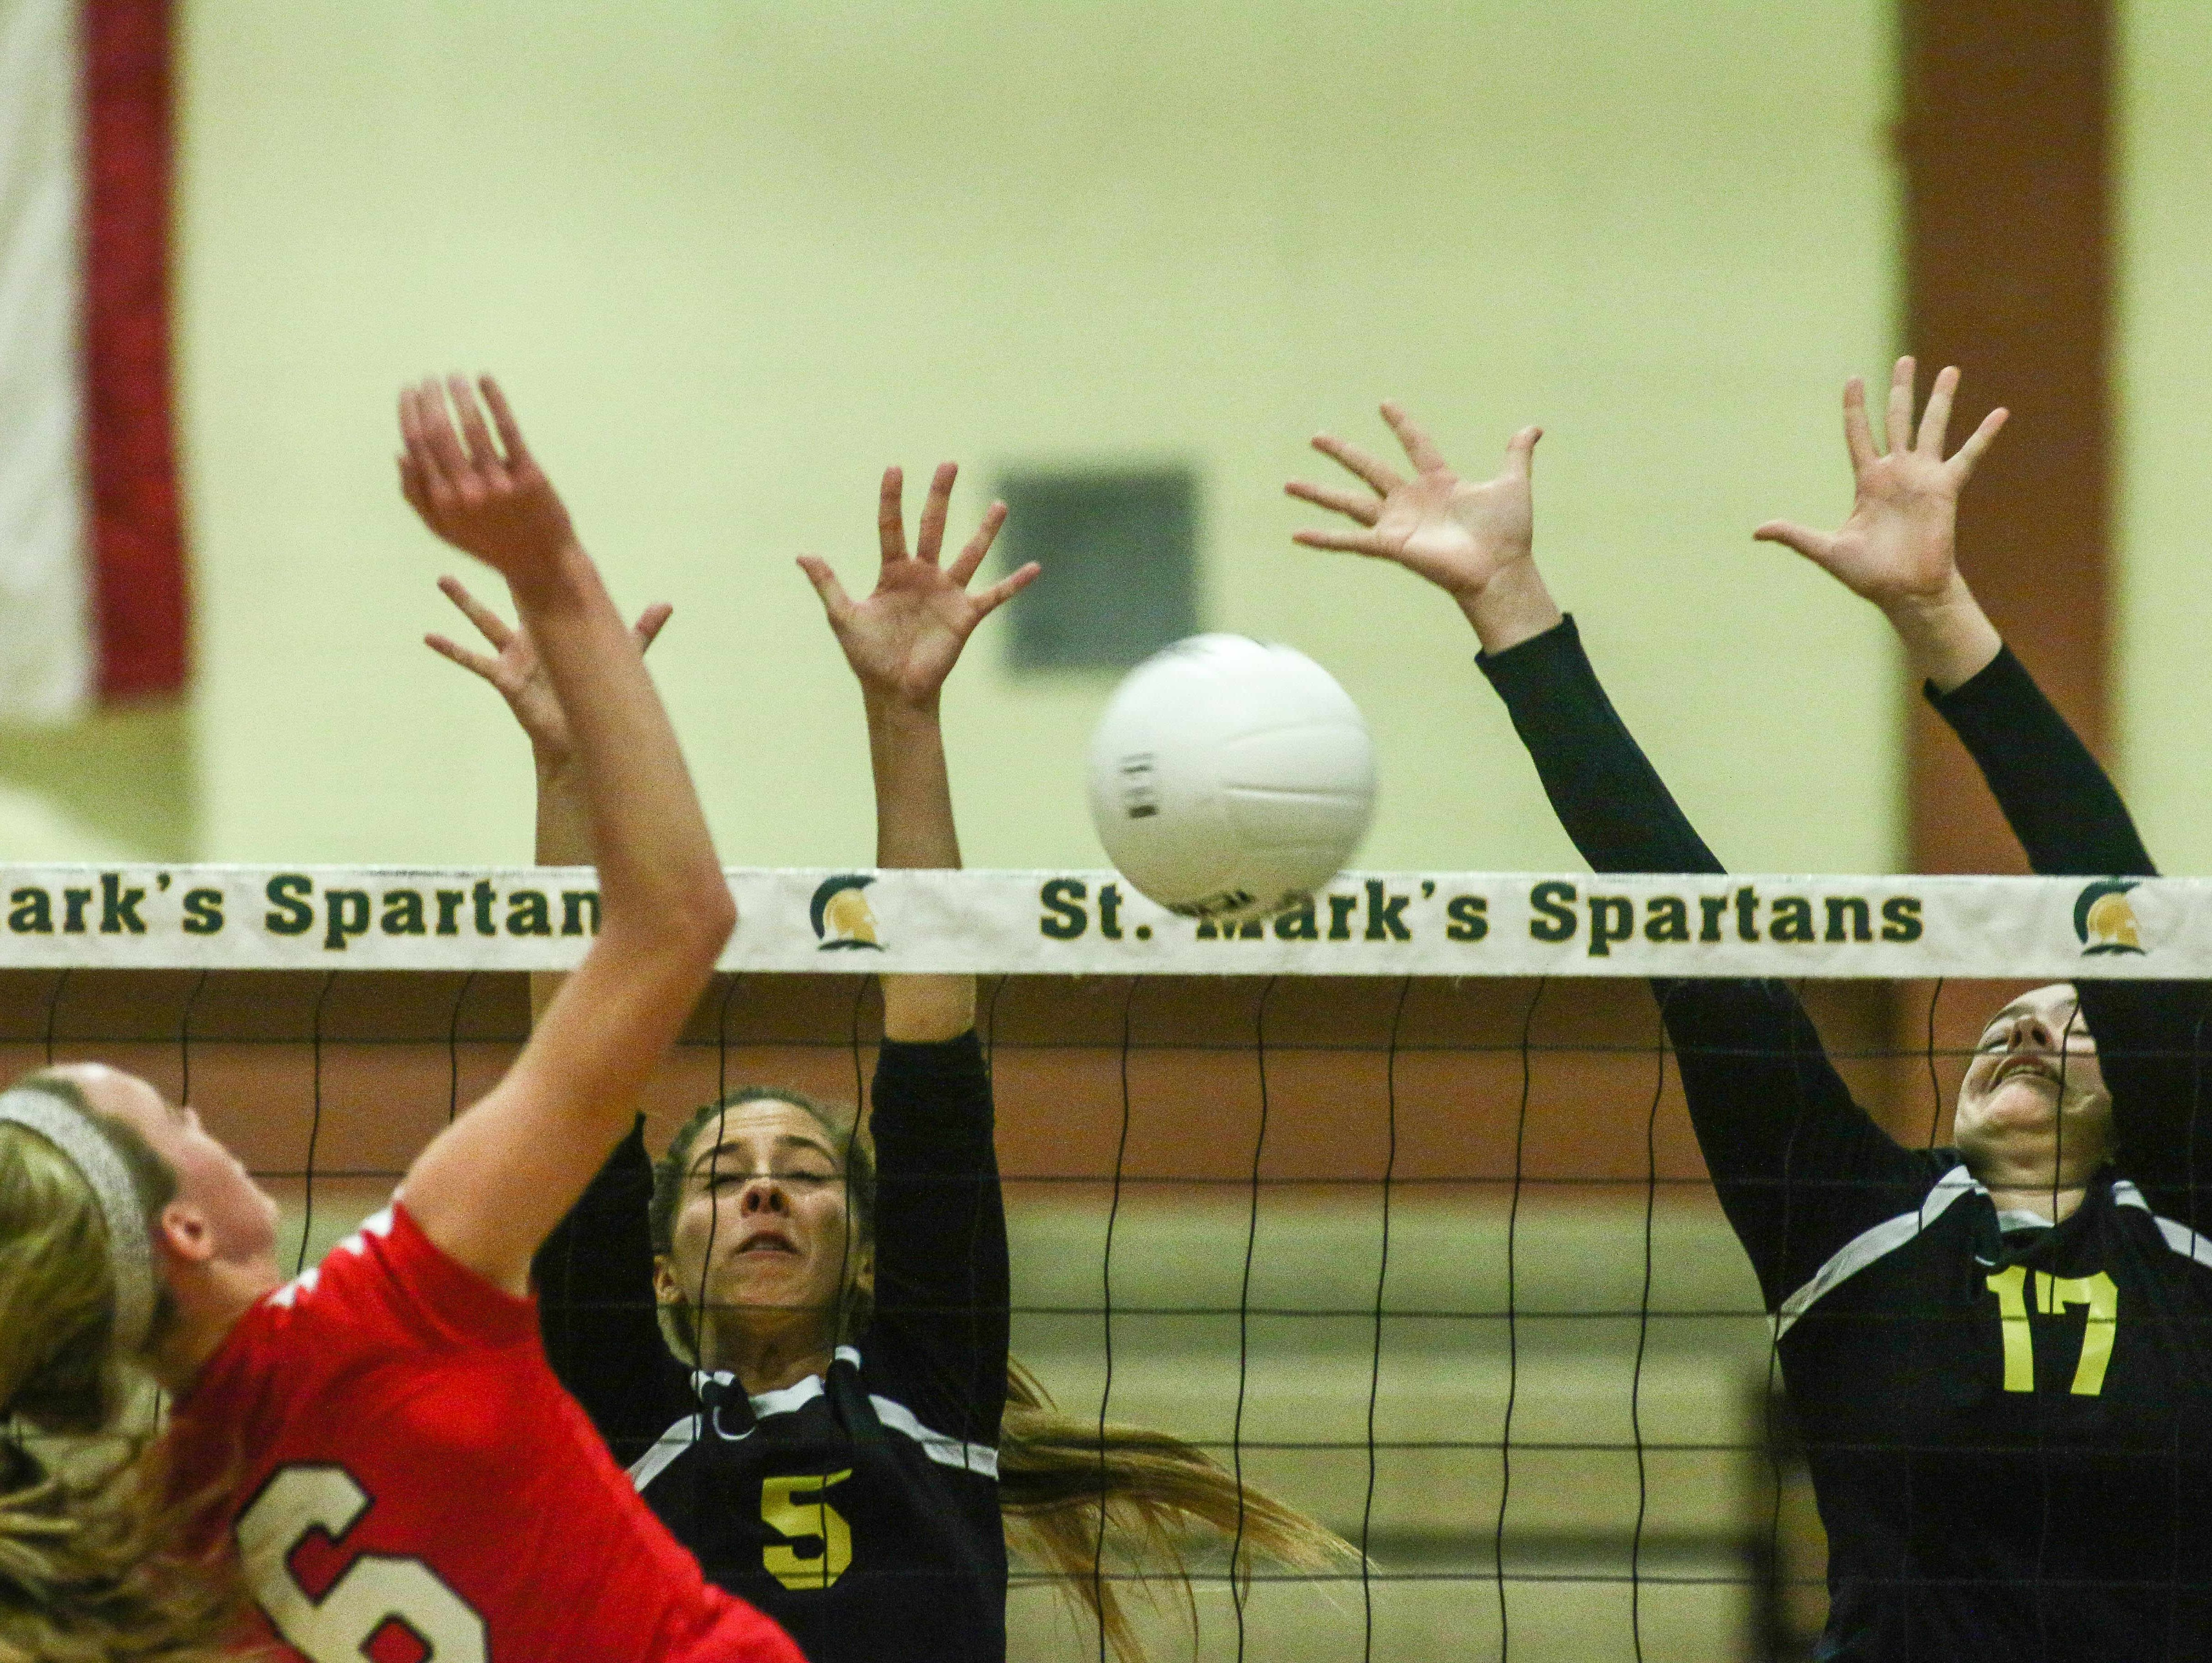 Ursuline's Corinne Furey (6) spikes the ball past the Padua defense during a DIAA Girls Volleyball quarterfinals match between Padua and Ursuline on Tuesday at St. Mark's High School in Wilmington.